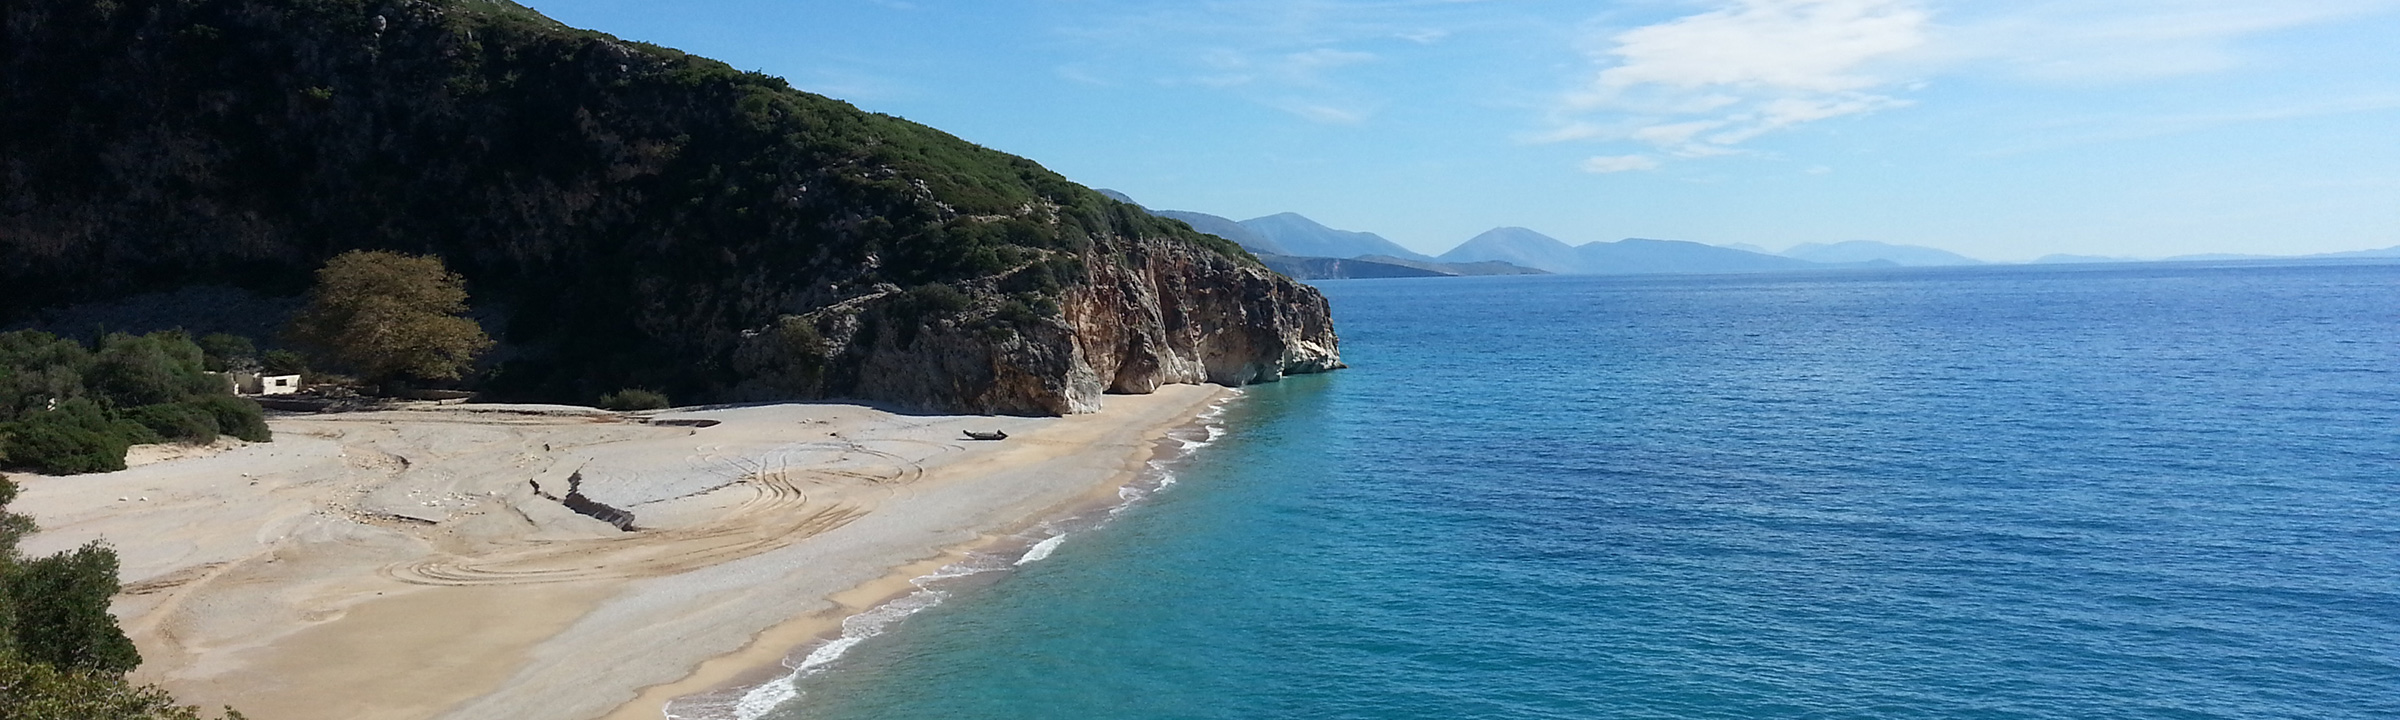 A small beach on Albania's southern coast